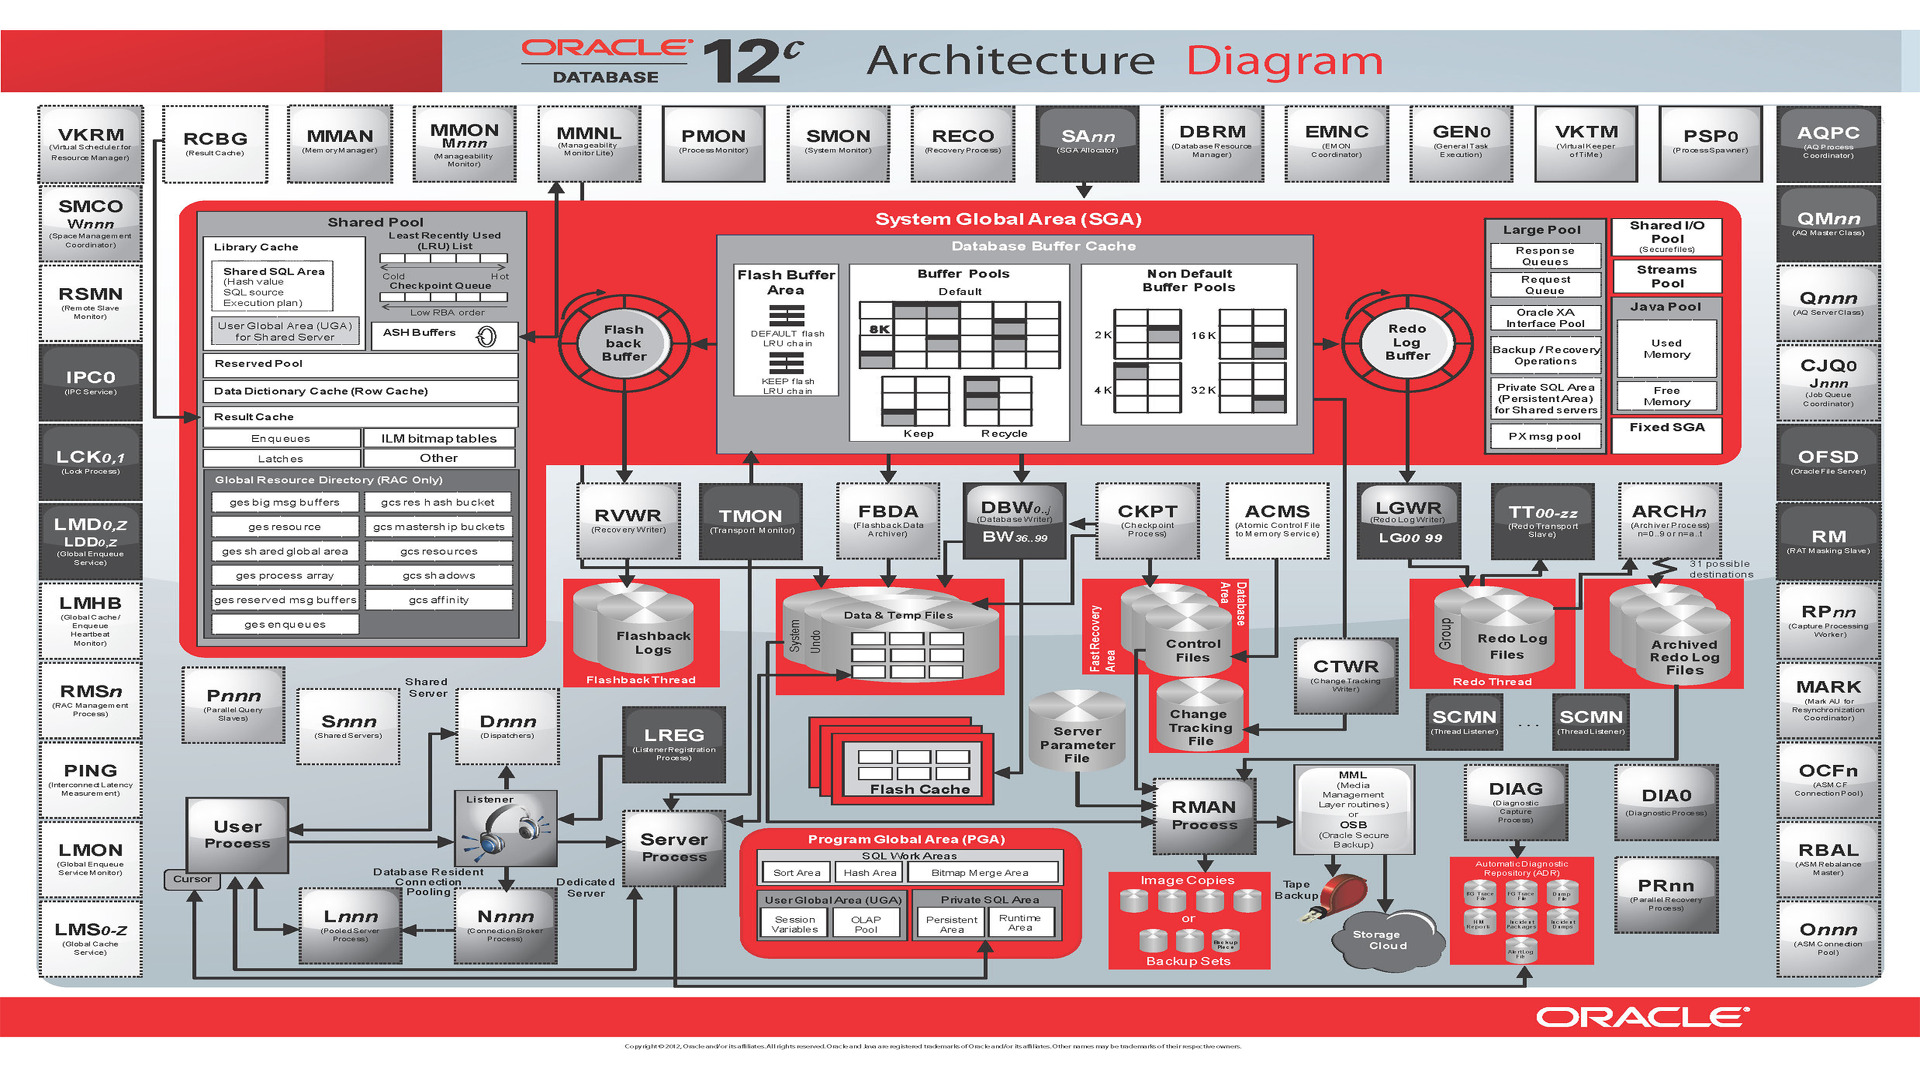 Arquitetura oracle diagrama mr dba for Architecture oracle